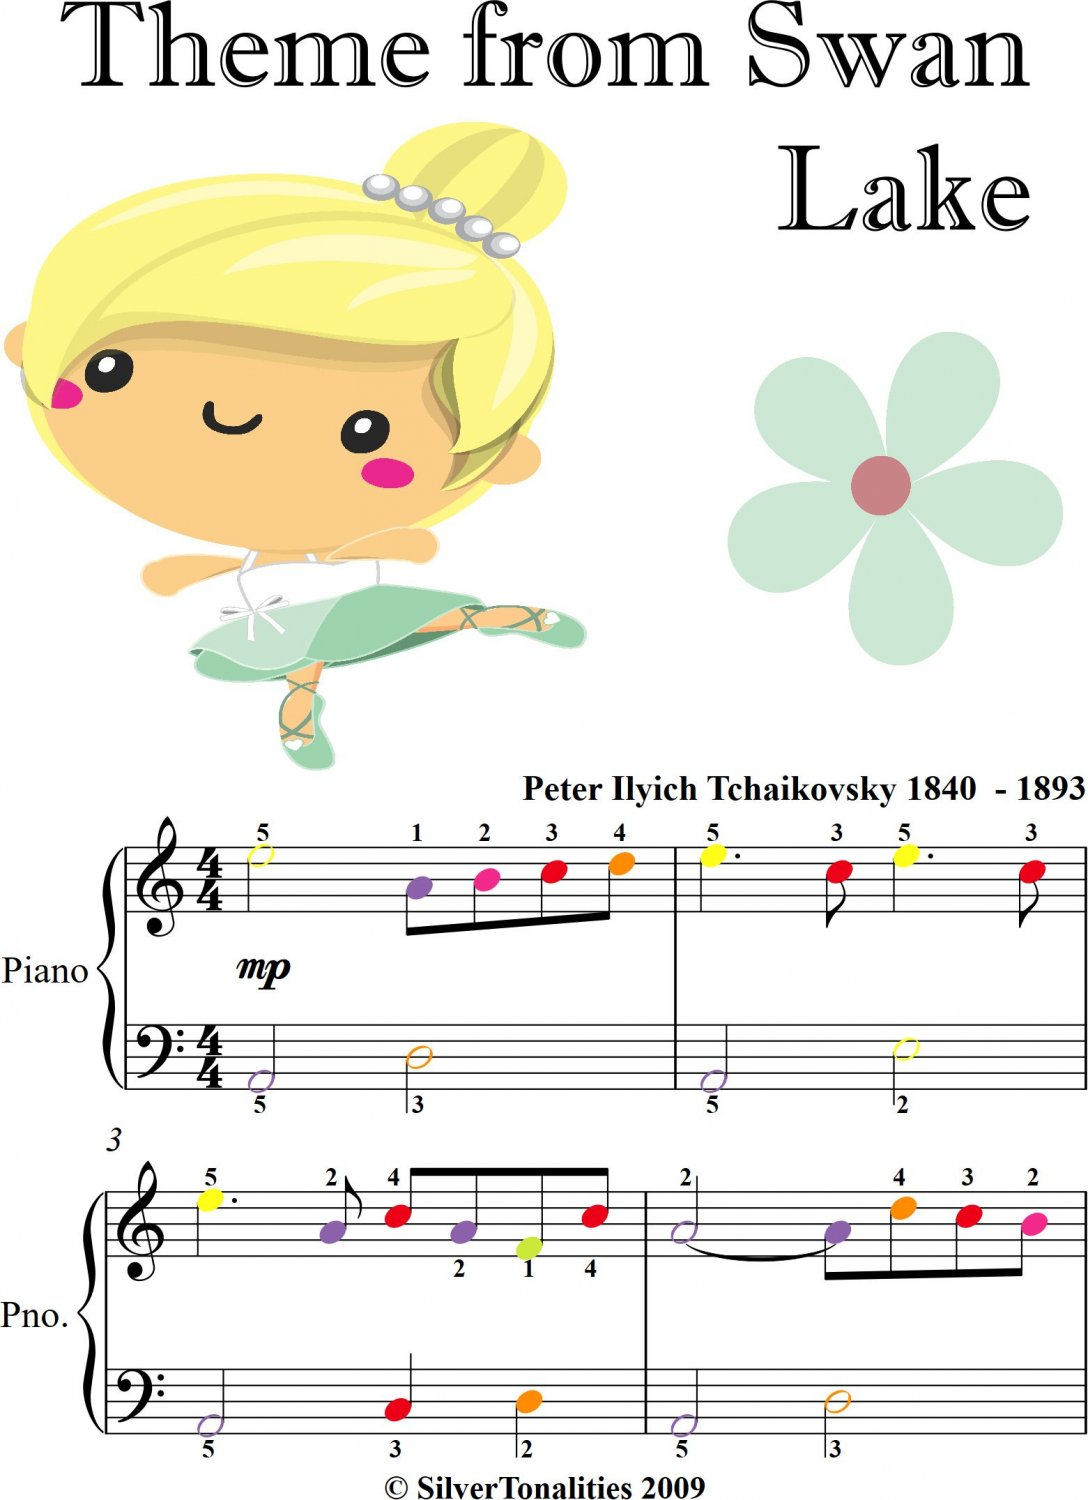 Theme from Swan Lake Easiest Piano Sheet Music with Colored Notation